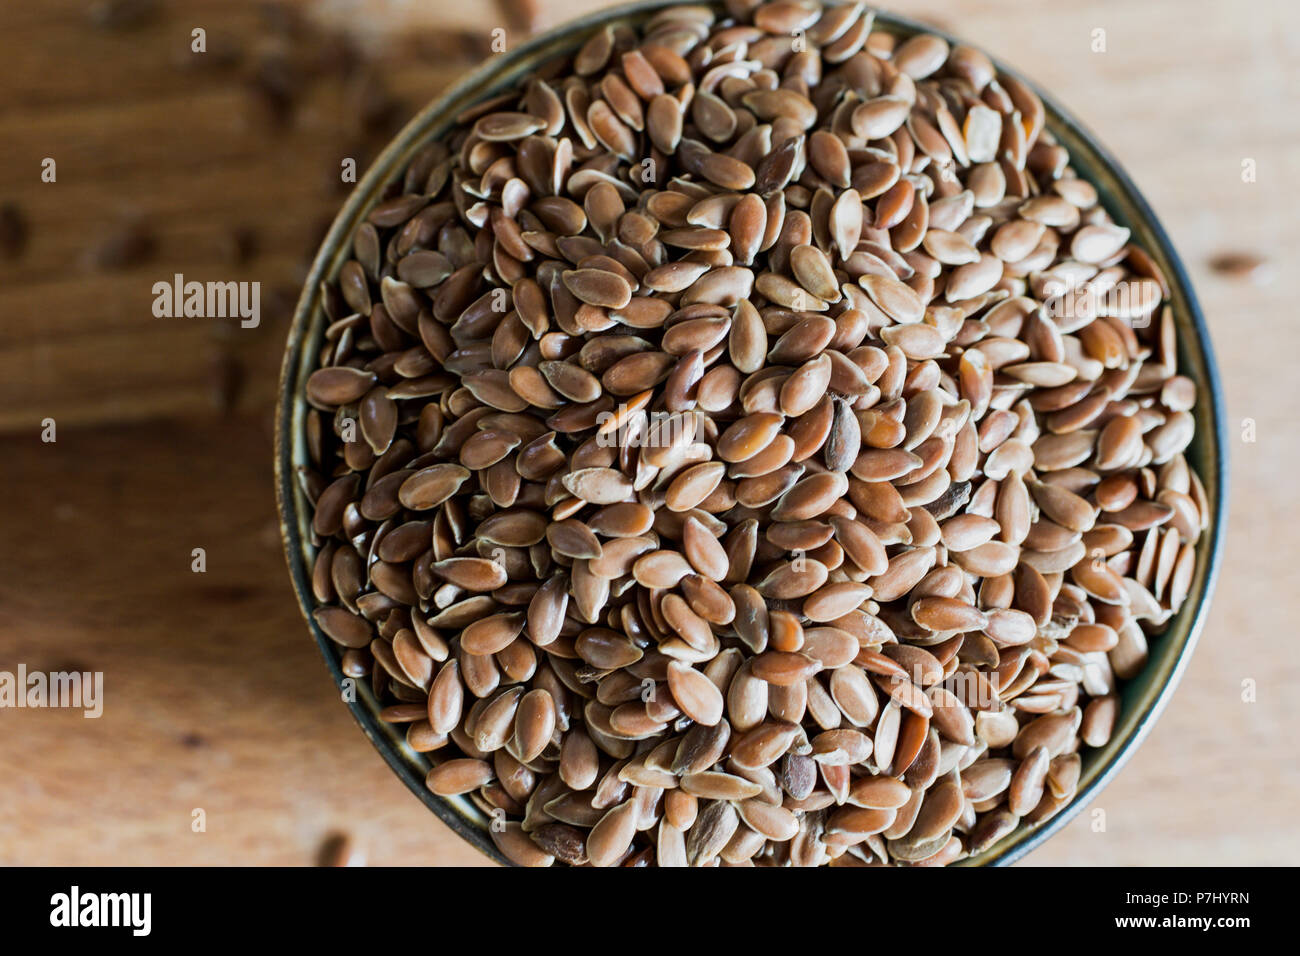 healthy raw diet linseed flaxseed grain cereal in bowl on wooden table - Stock Image